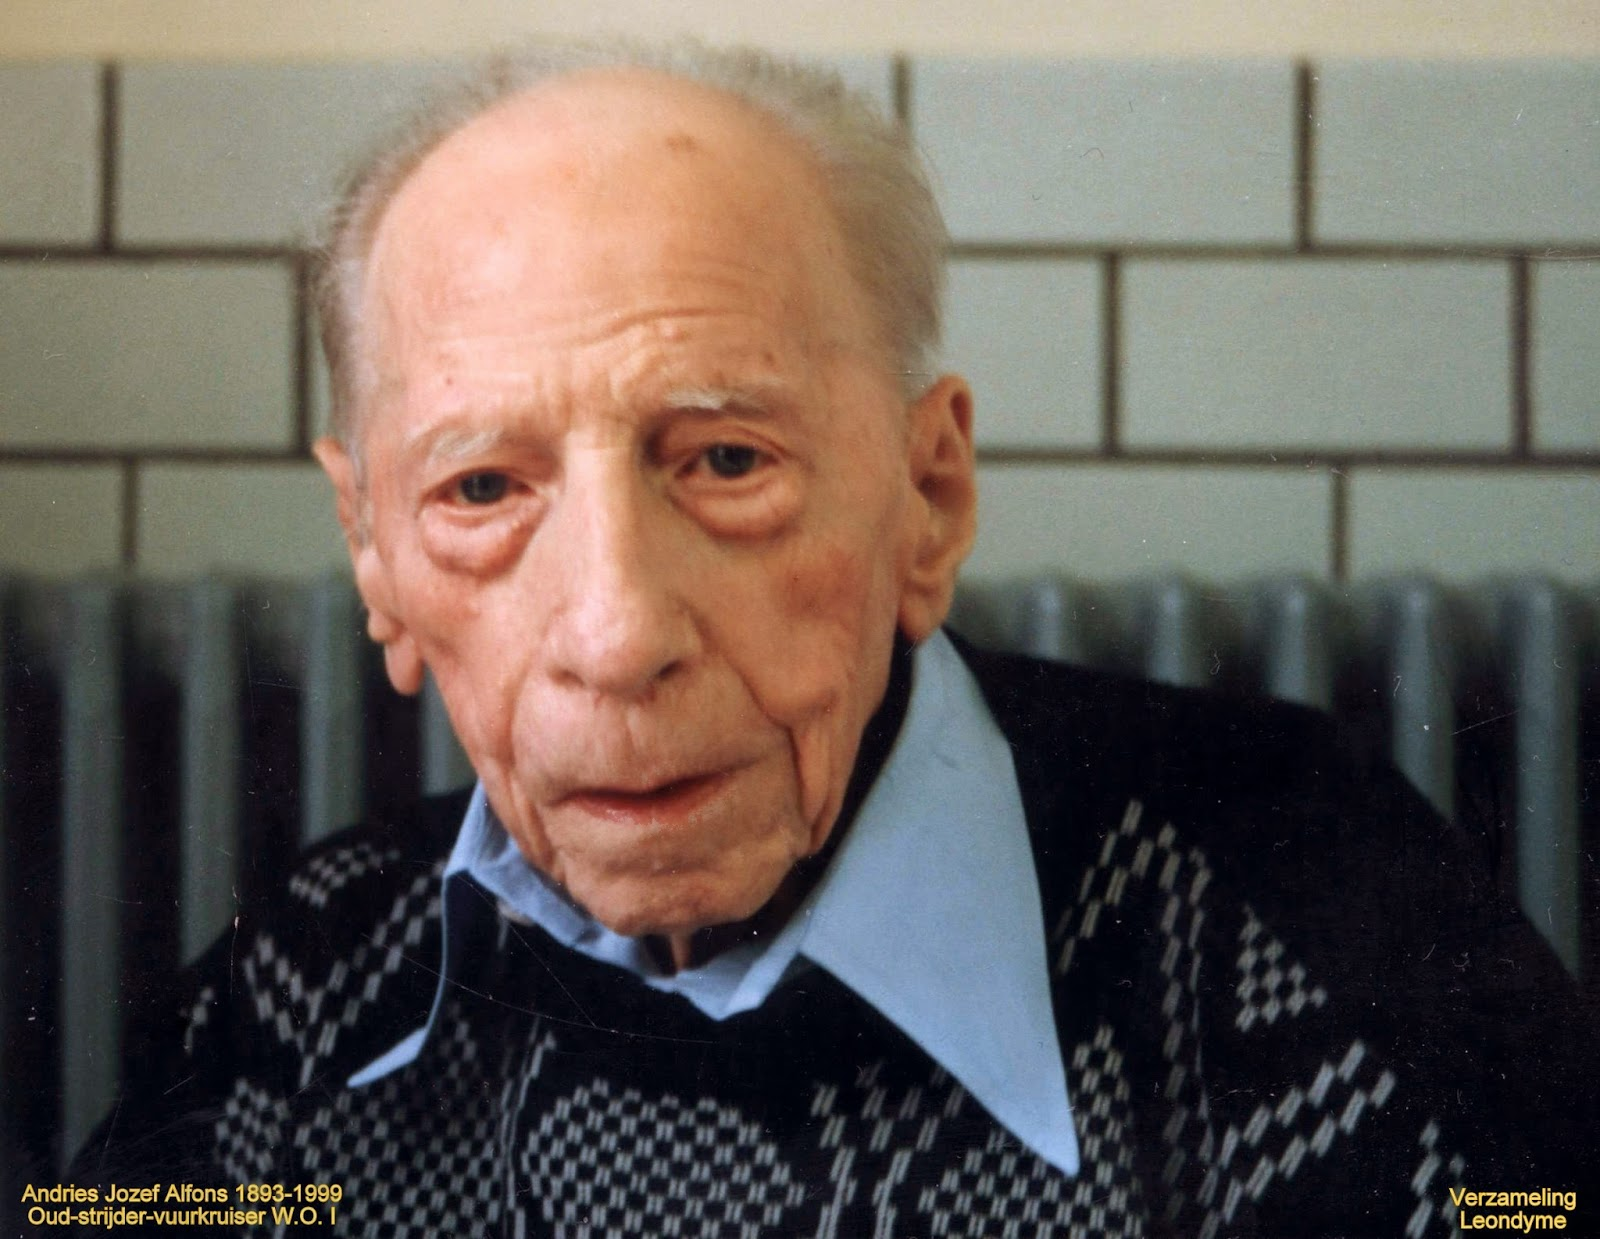 Jozef Alfons Andries 1893-1999. Verzameling Leondyme.